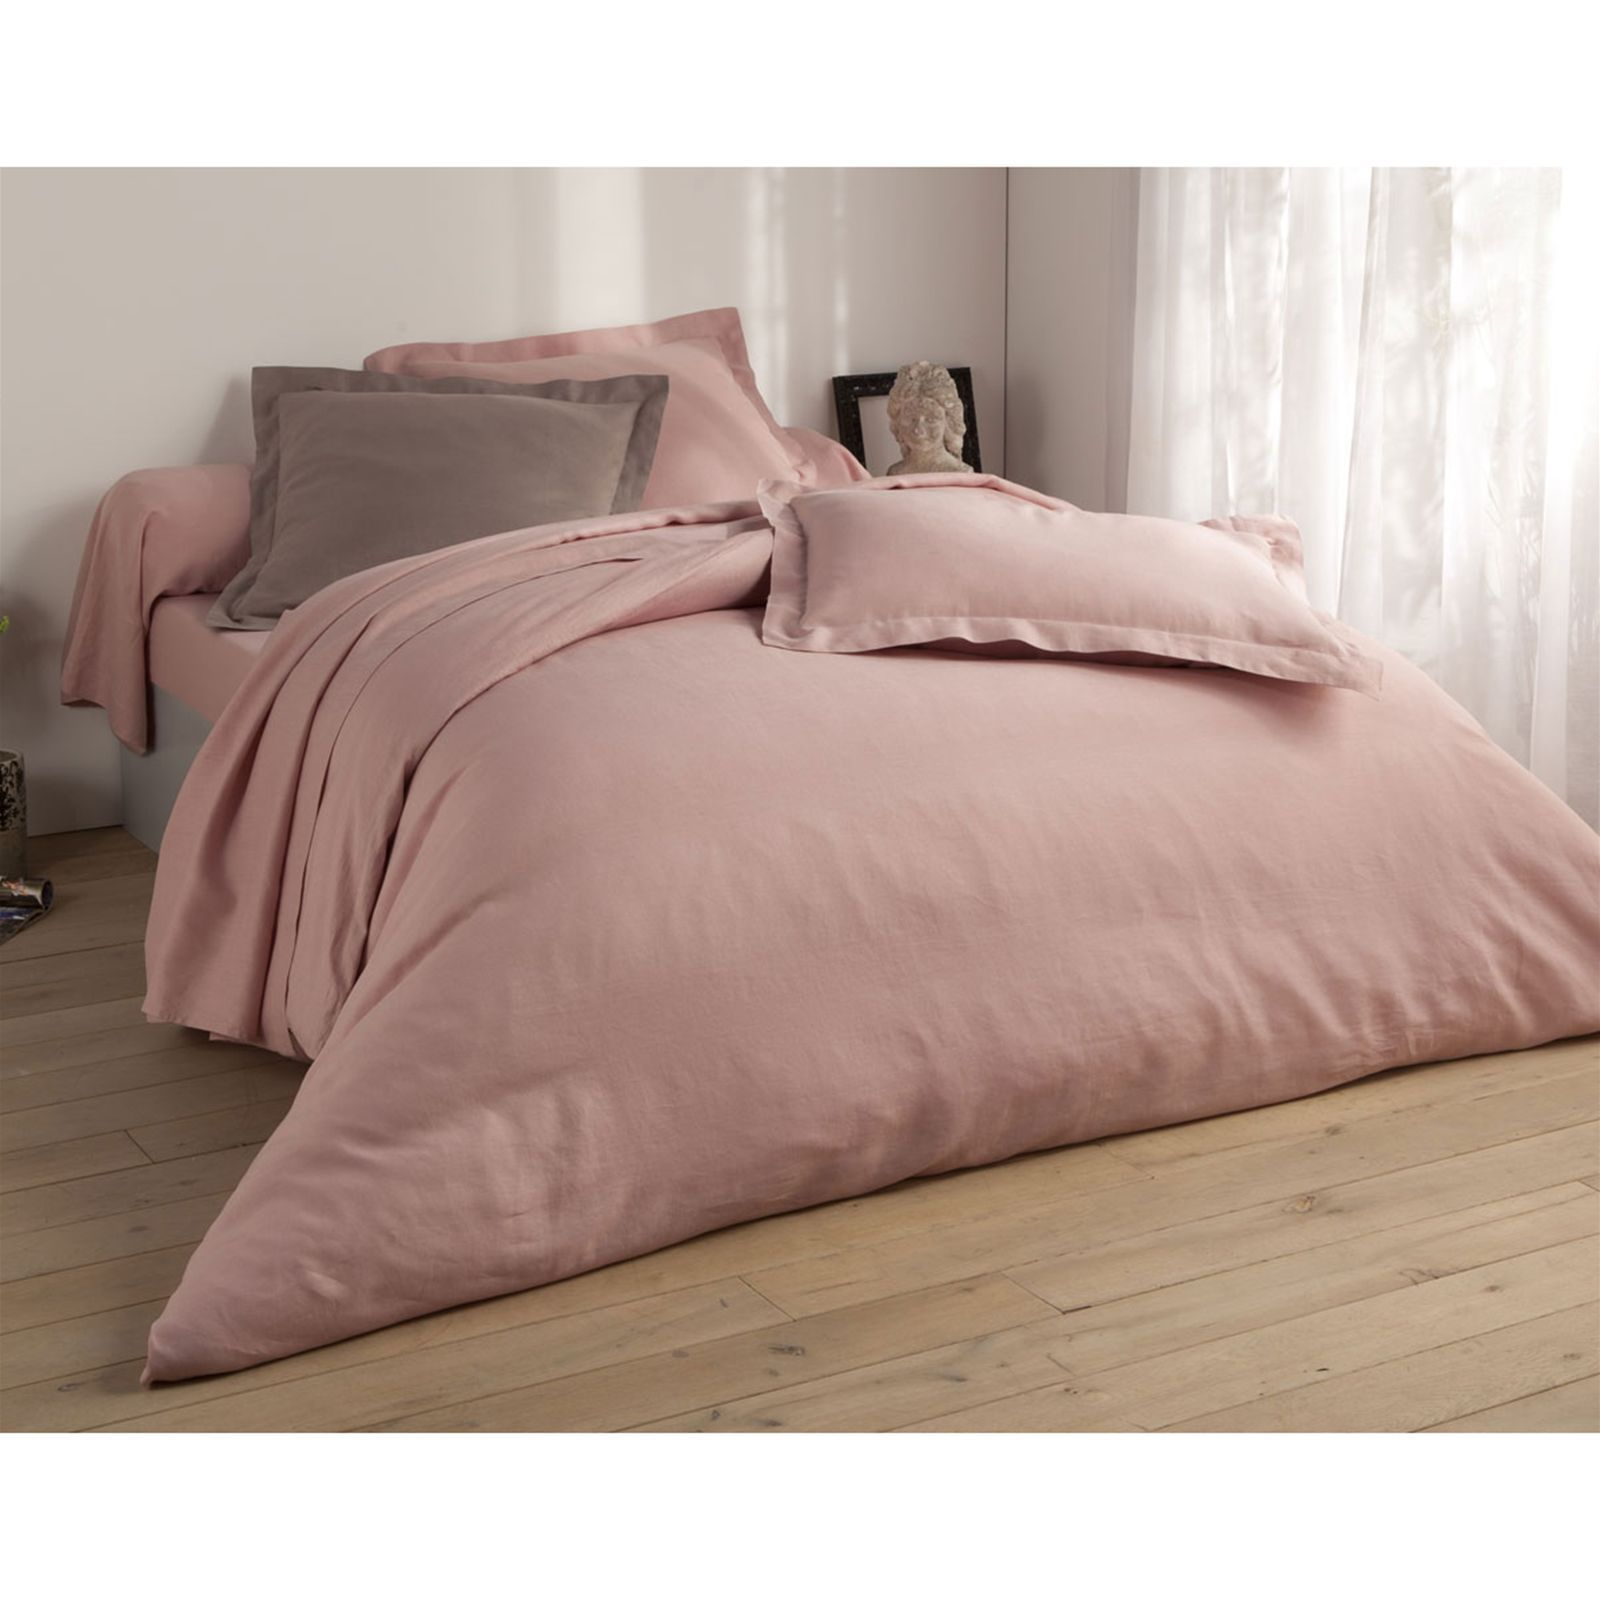 Becquet housse de couette en lin uni rose the brandalley for Housse de couette leopard rose